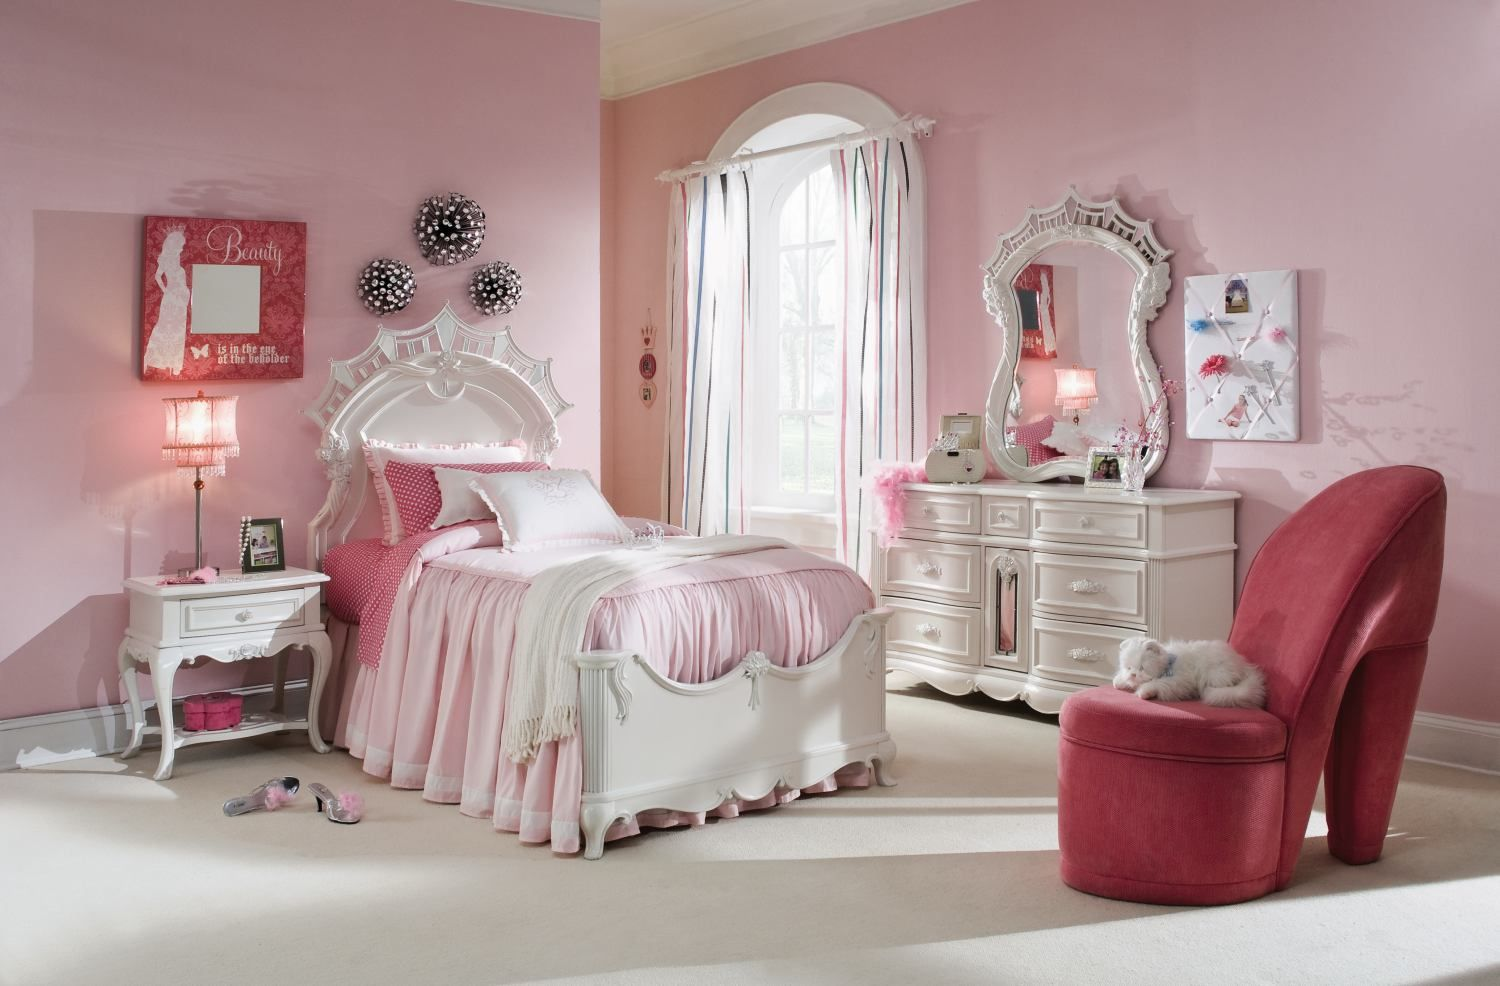 Princess Bedroom Furniture 9 Photography Gallery Sites nice Amazing